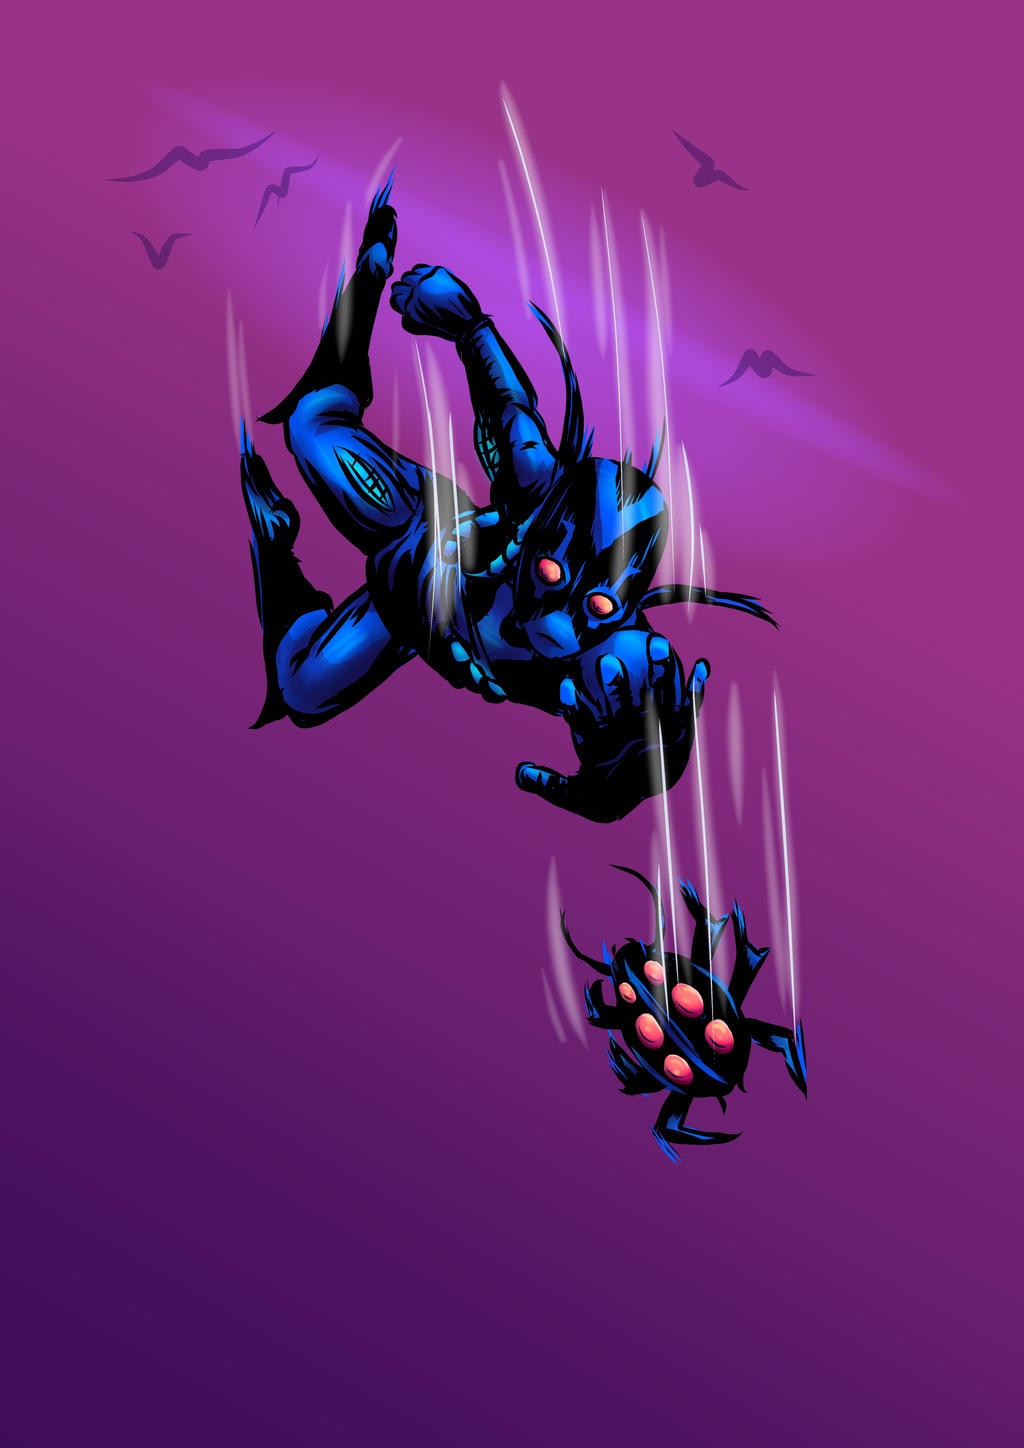 Belated Blue Beetle Birthday (with Birds) by carriehowarth